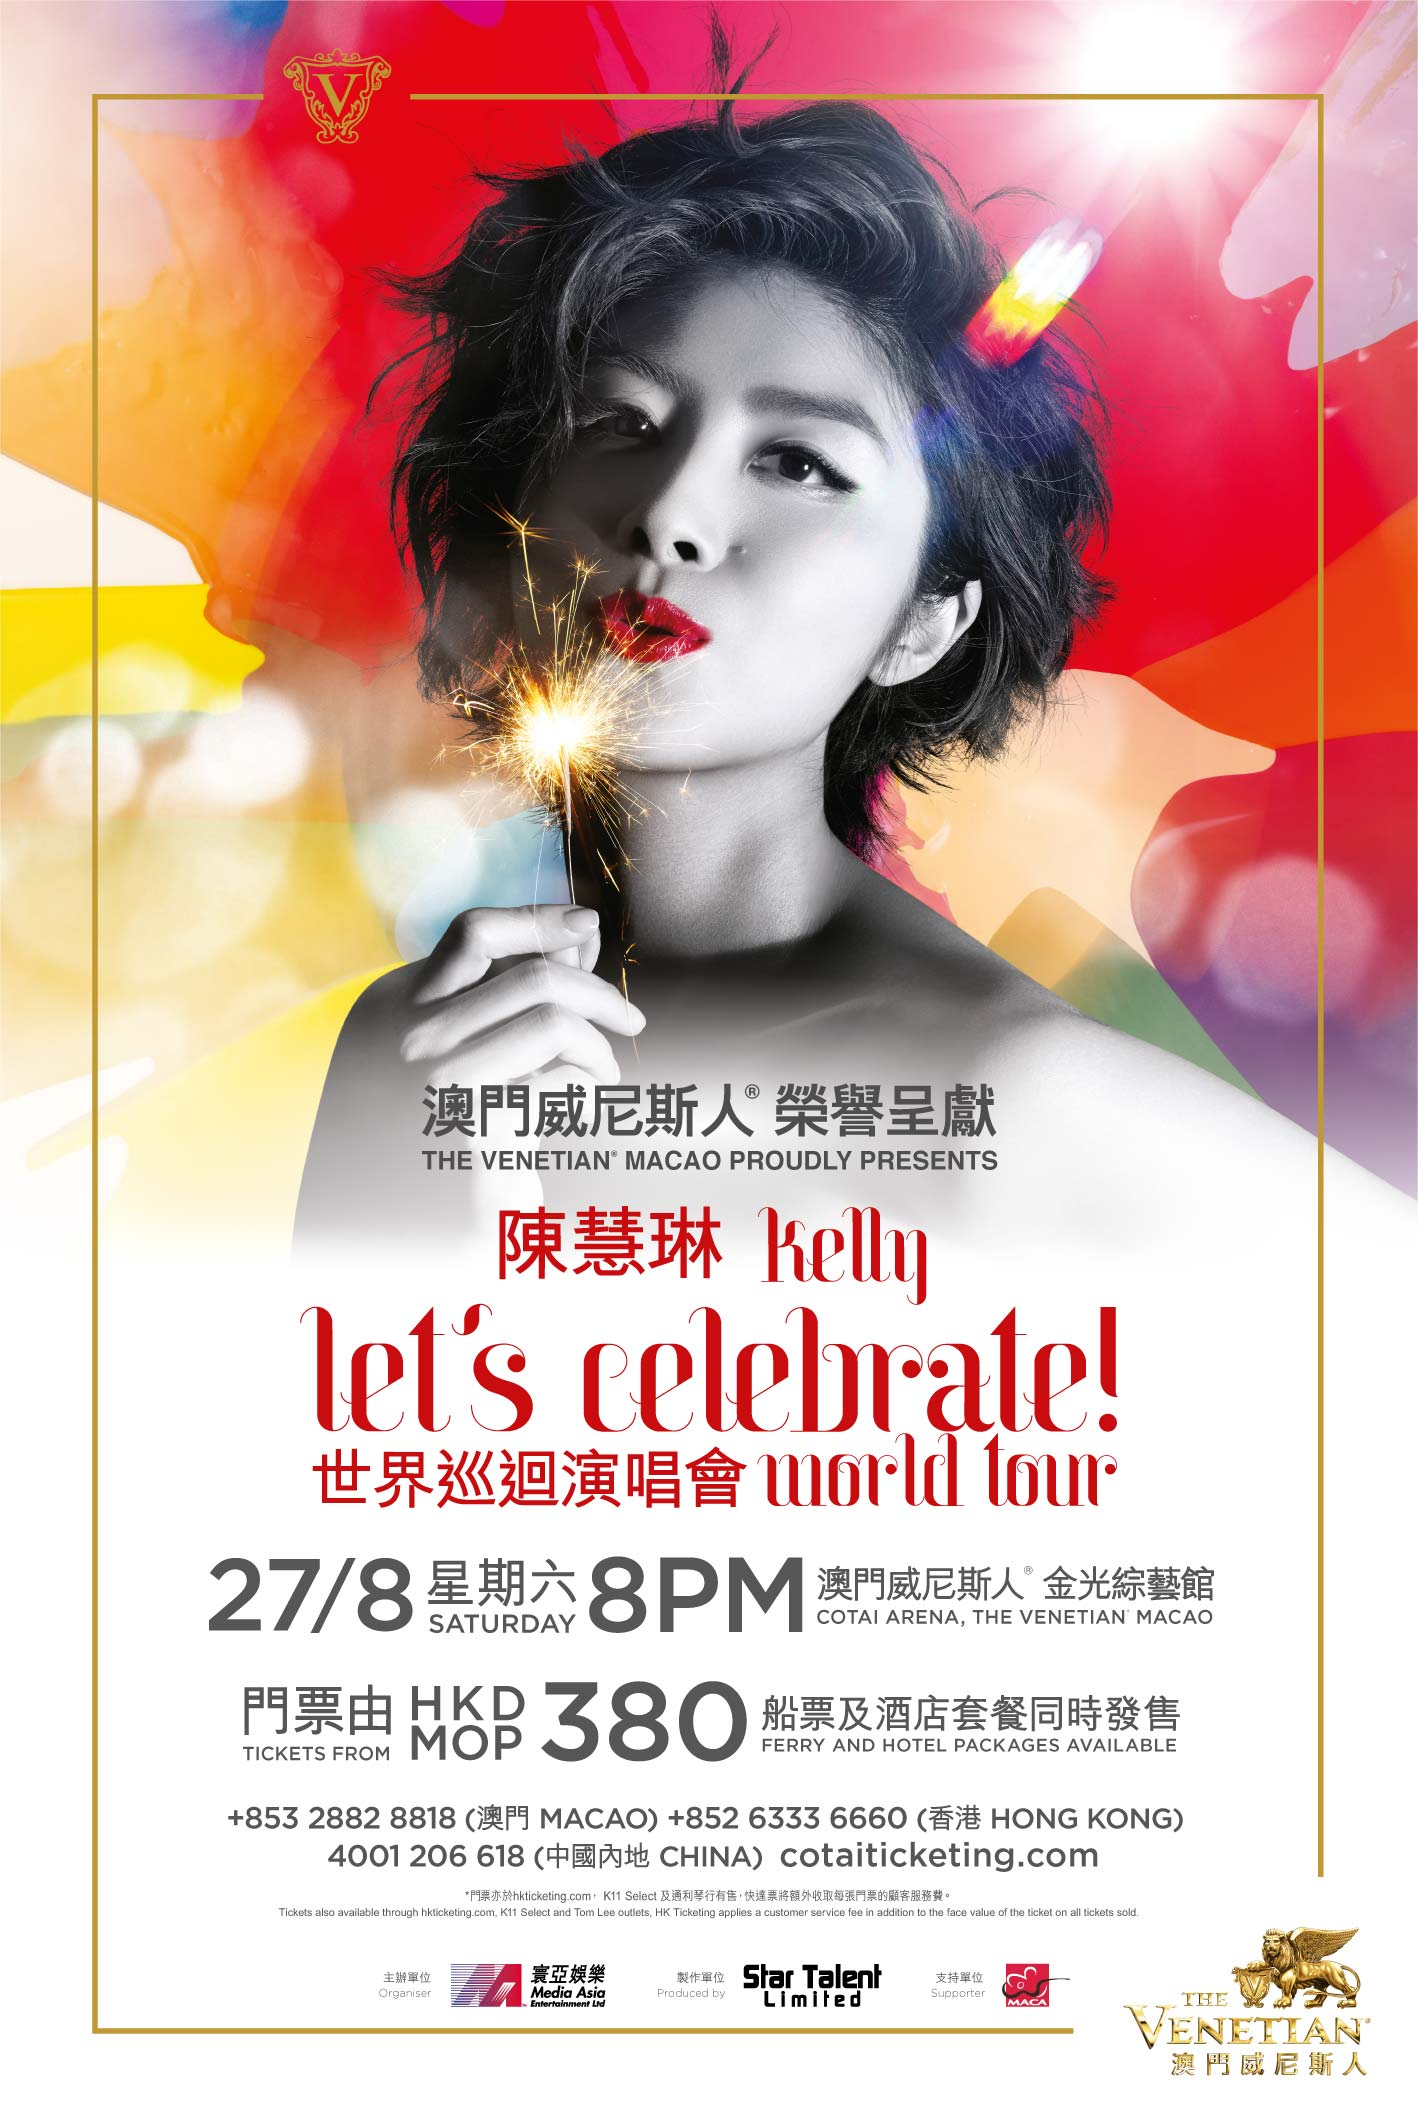 Kelly let's celebrate ! world tour